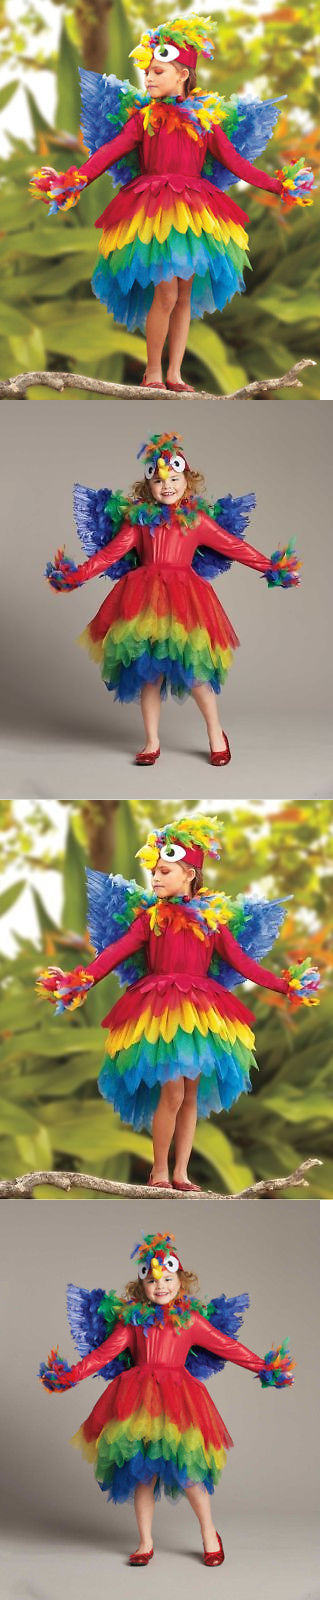 Girls 80914 Girls Size 8 Parrot Chasing Fireflies Costume Complete - party city store costumes